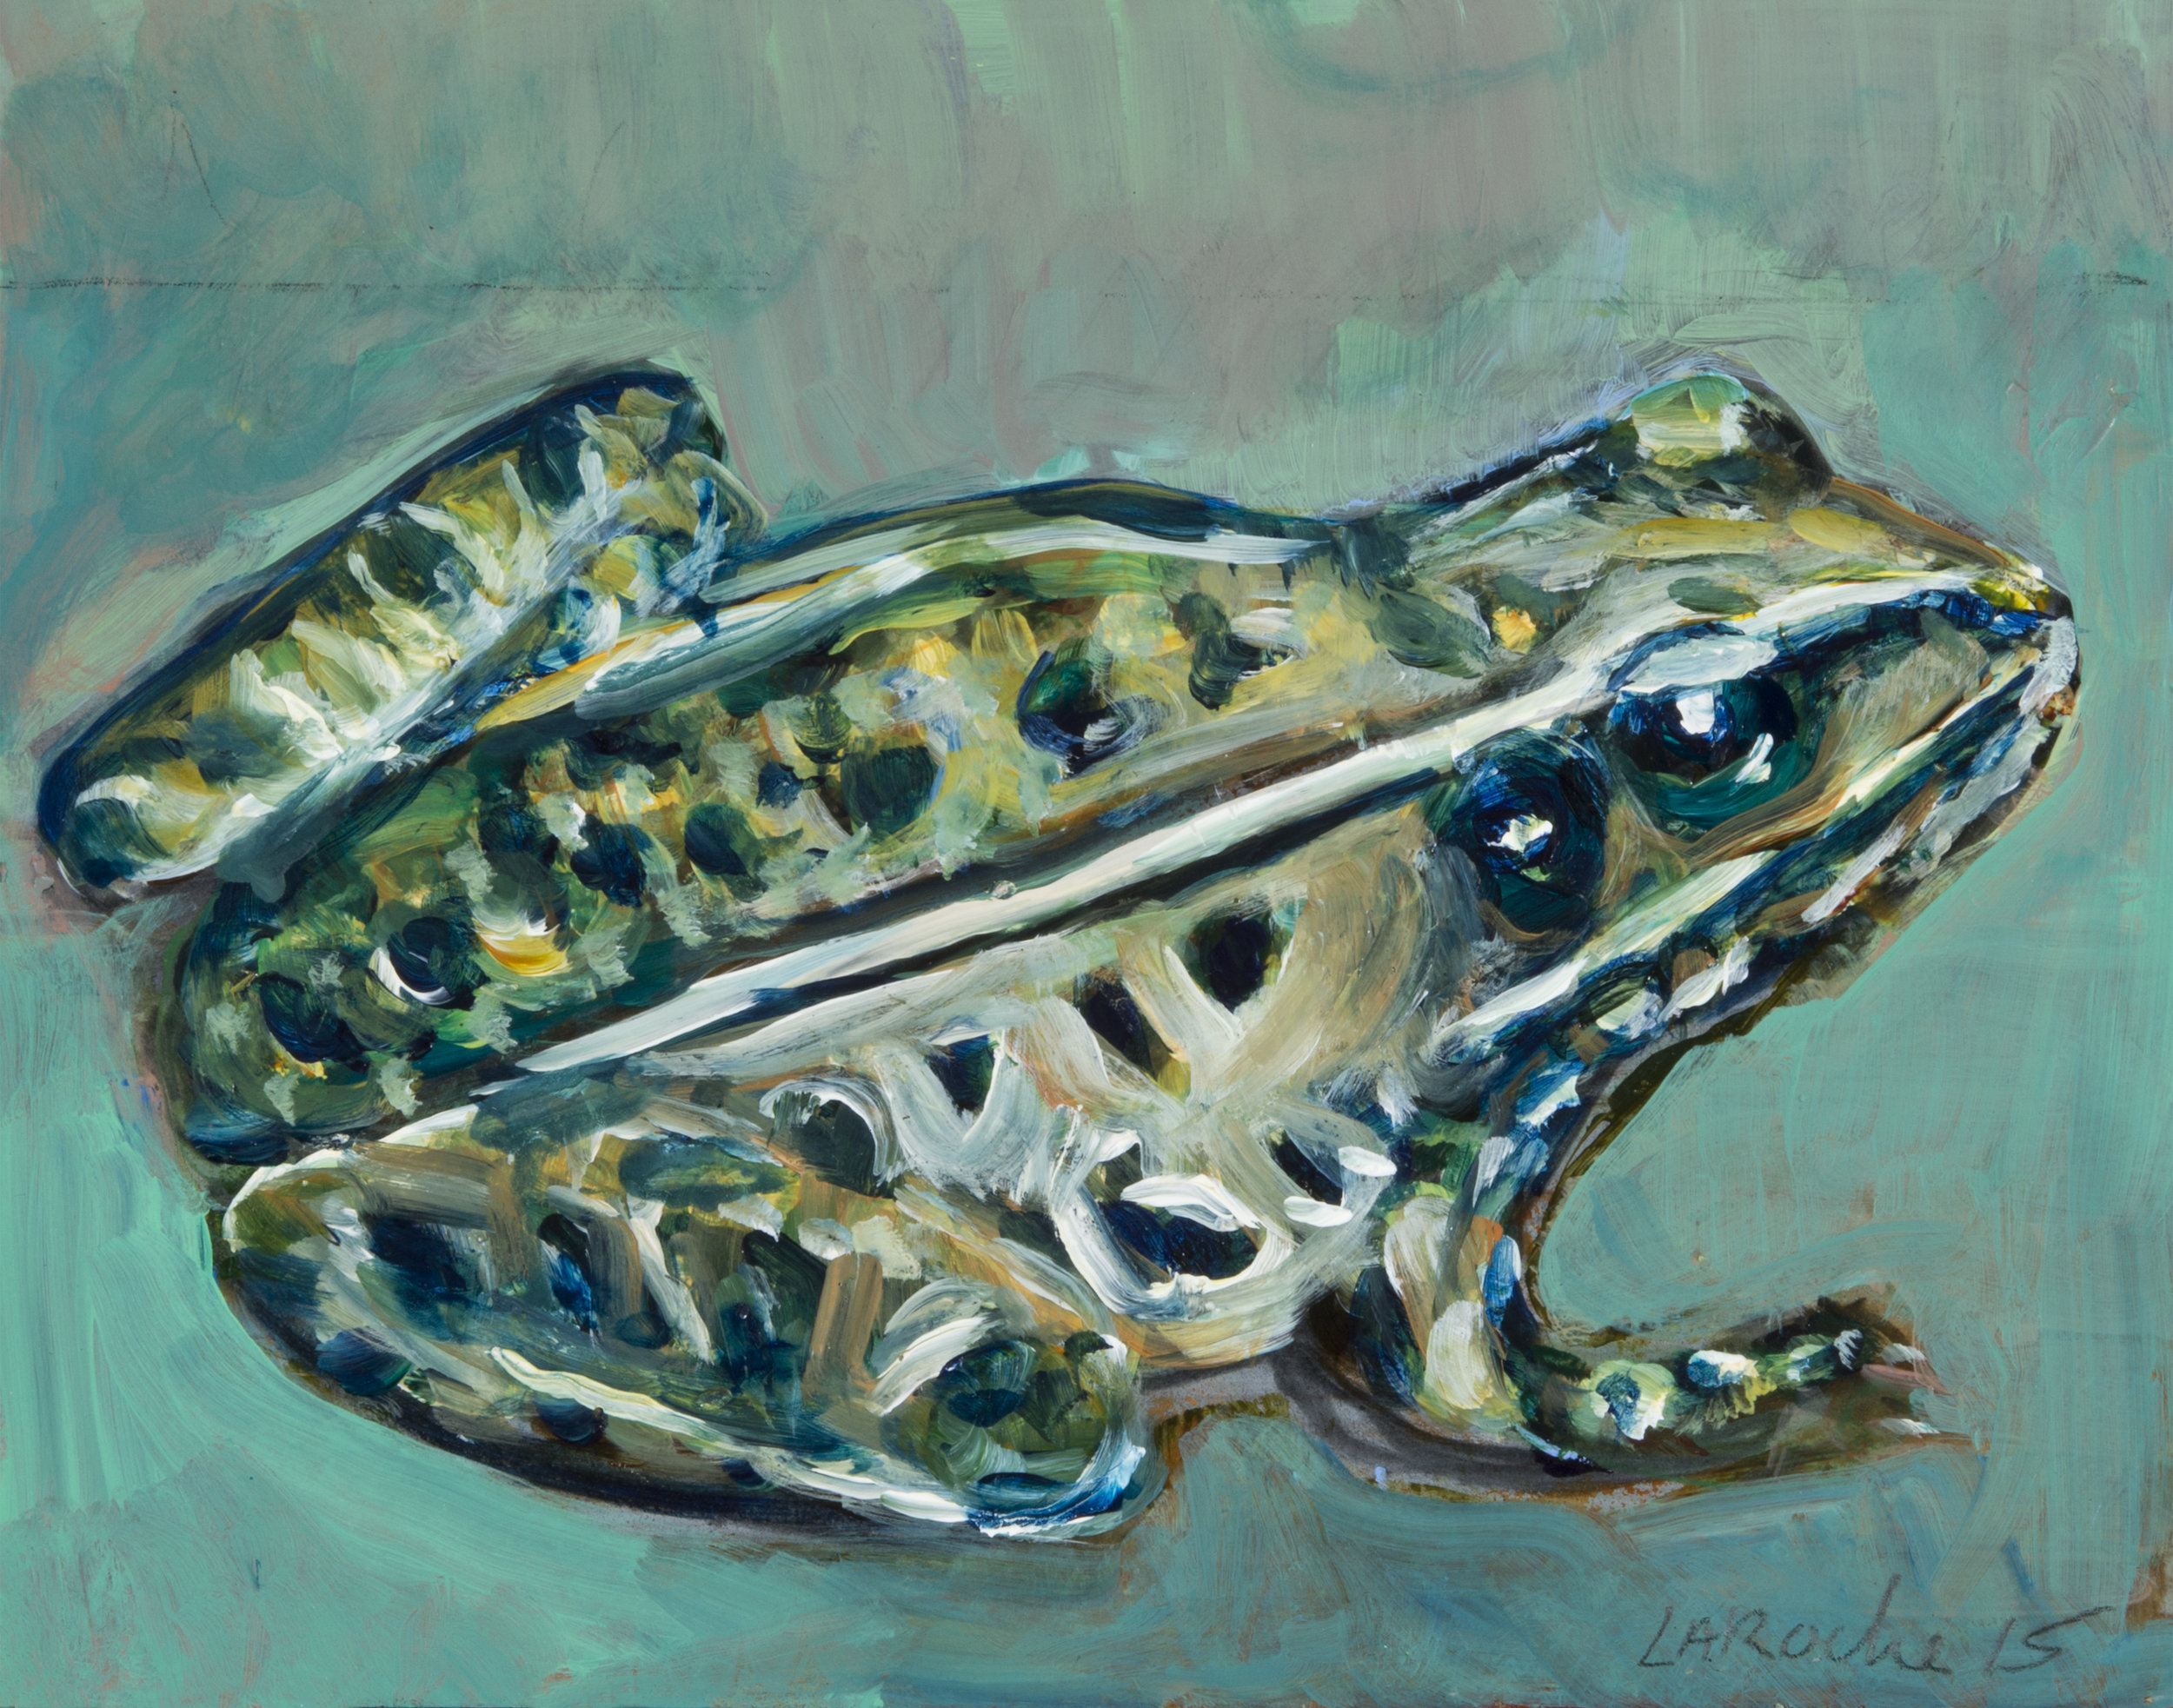 Prince Charming: I am not a frog  (ode to Aldwyth) VI